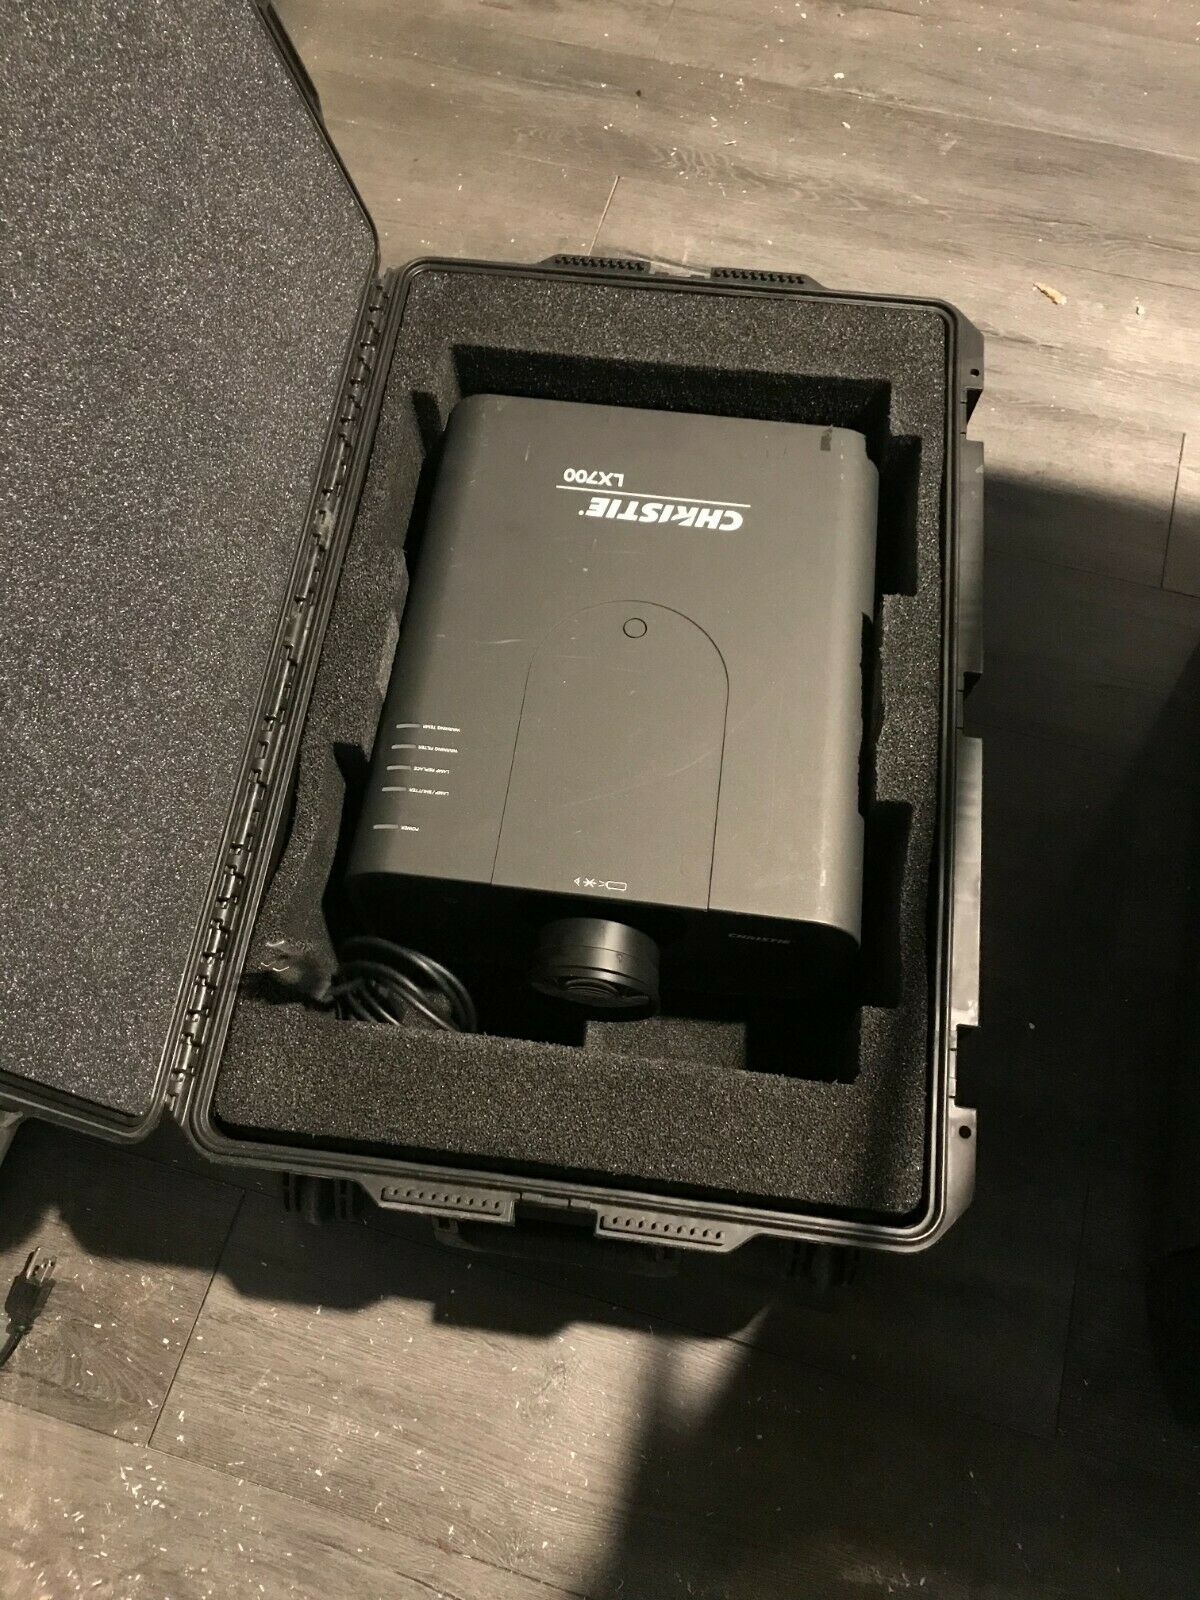 Christie LX-700 Projector 7000 Lumens XGA Large Venue 3LCD Projector with Lens. Available Now for 650.00